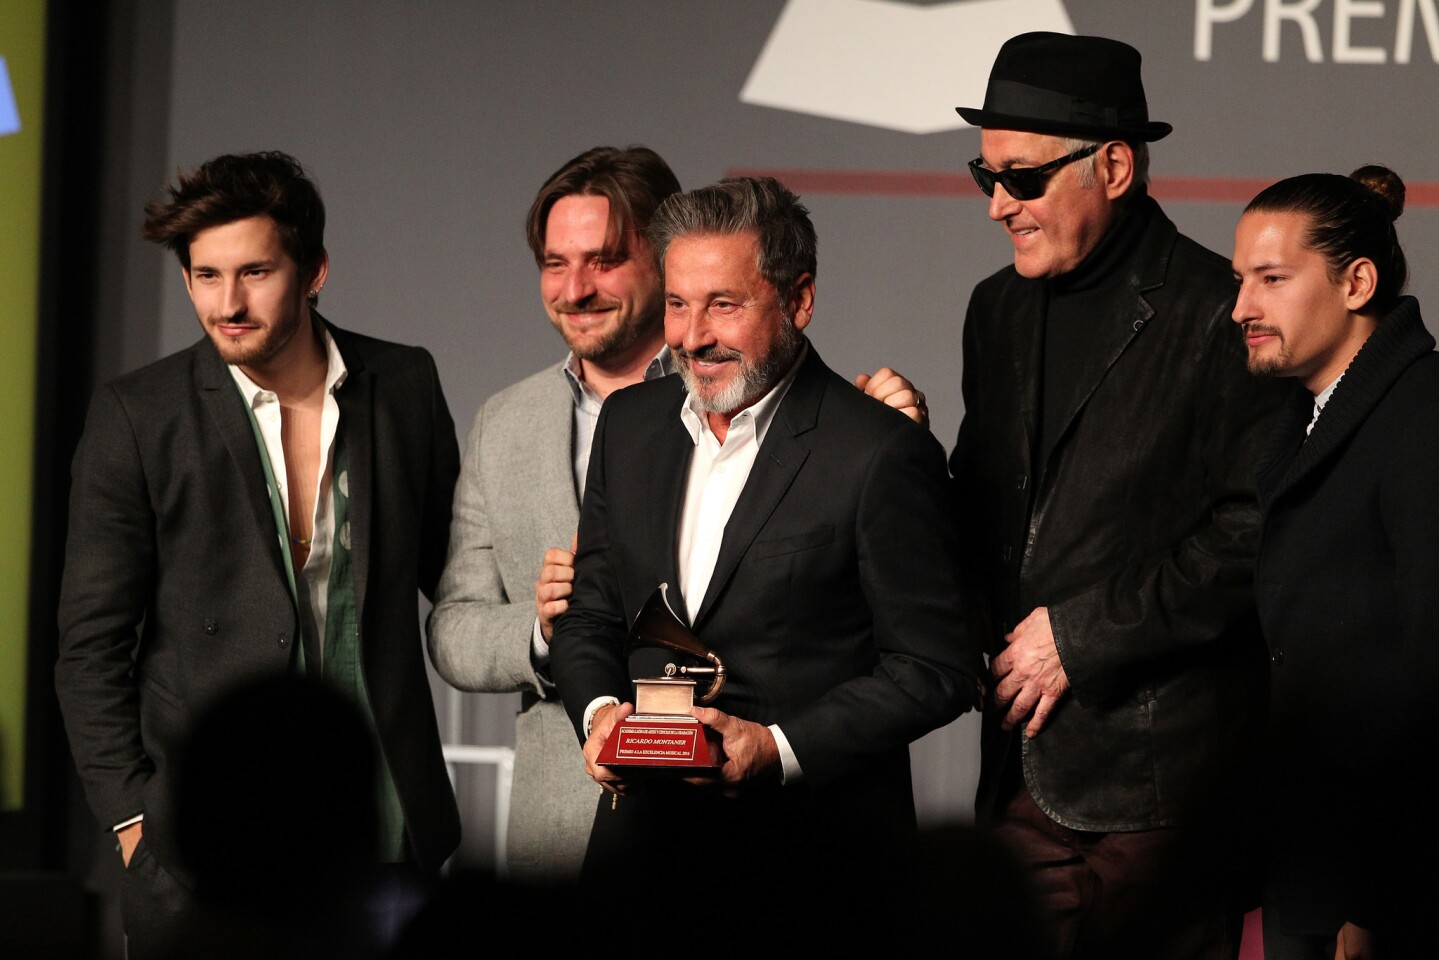 The XVII Annual Latin Grammy Awards - Special Awards Ceremony held at the Four Seasons Hotel Mandalay Place on November 16, 2016 in Las Vegas, Nevada. (Photo by © Fanny Garcia/DDPixels)